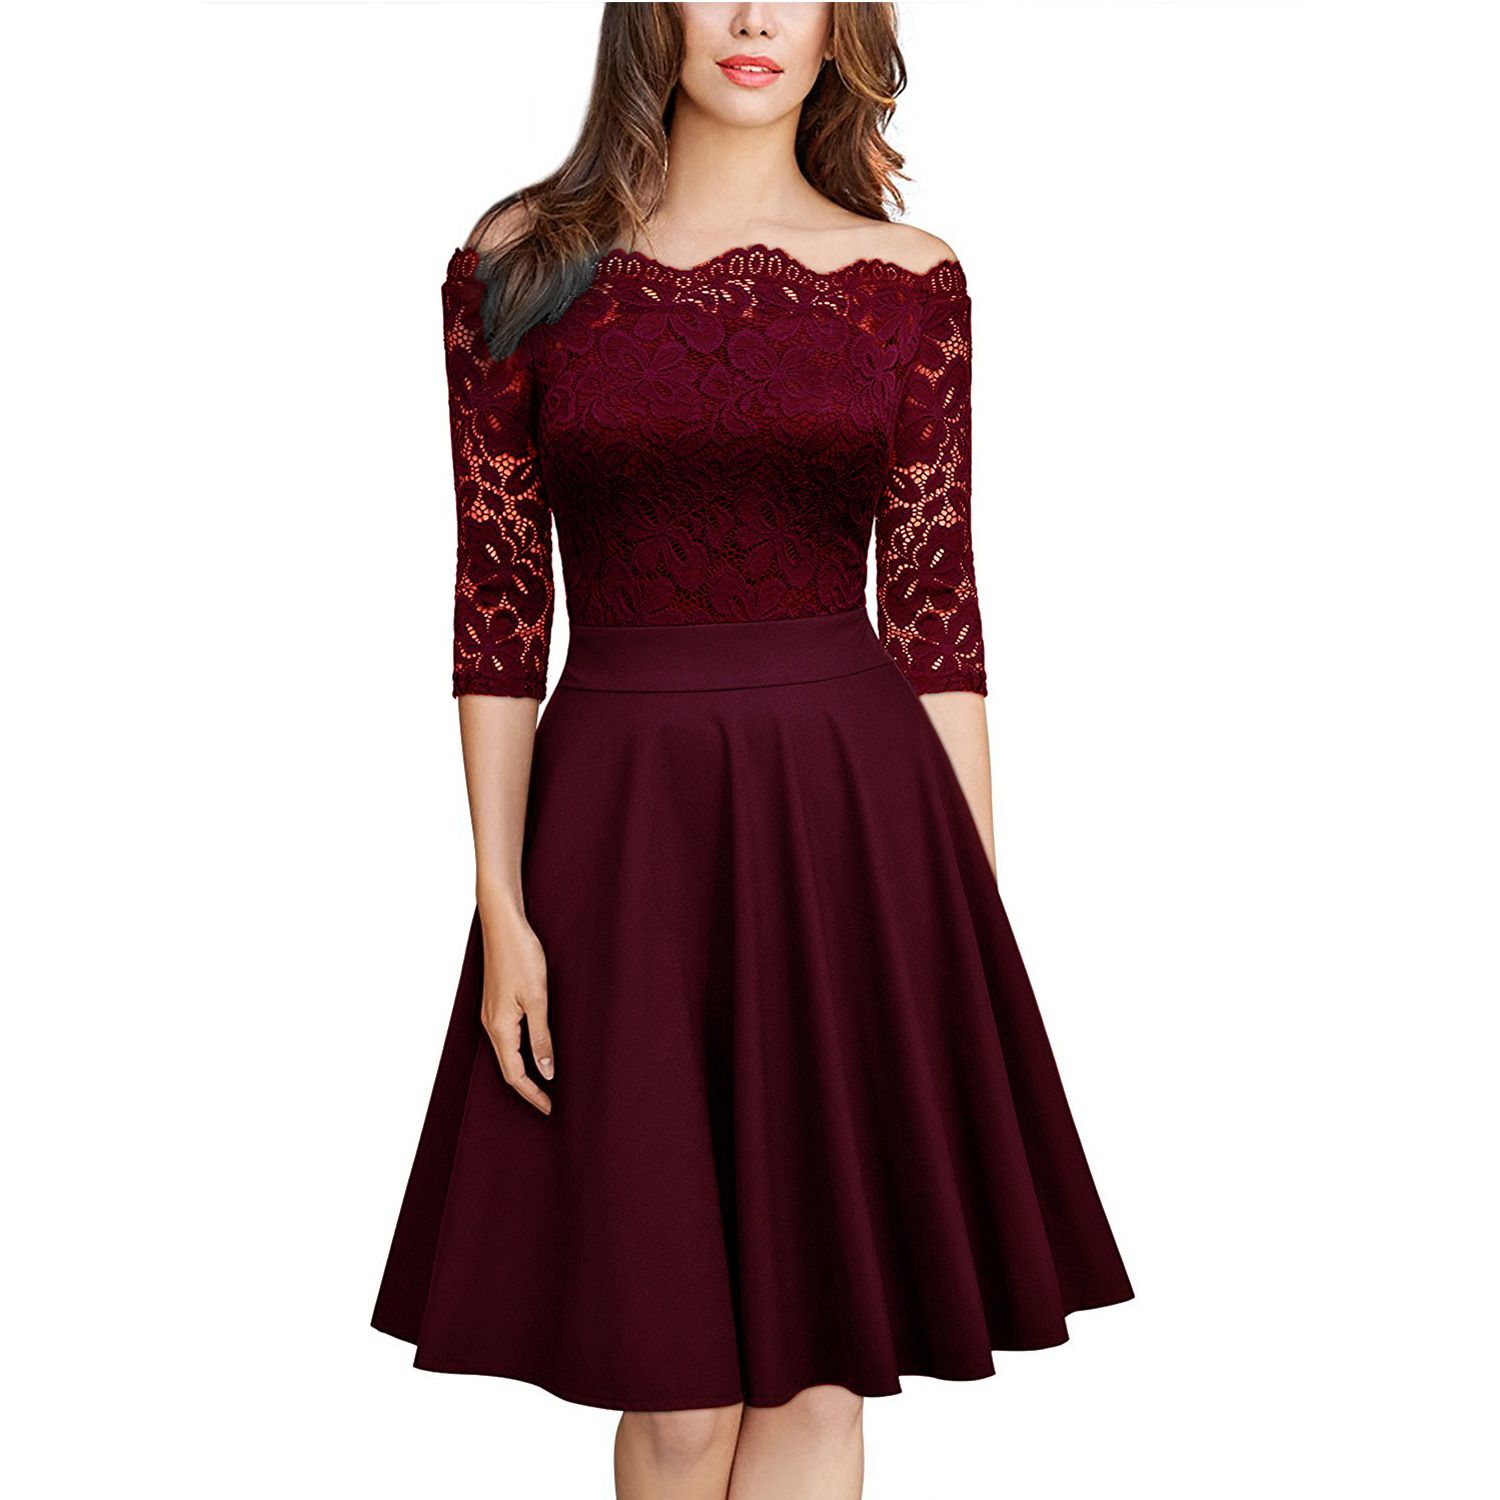 Aline half sleeves offtheshoulder lace prom evening party dresses